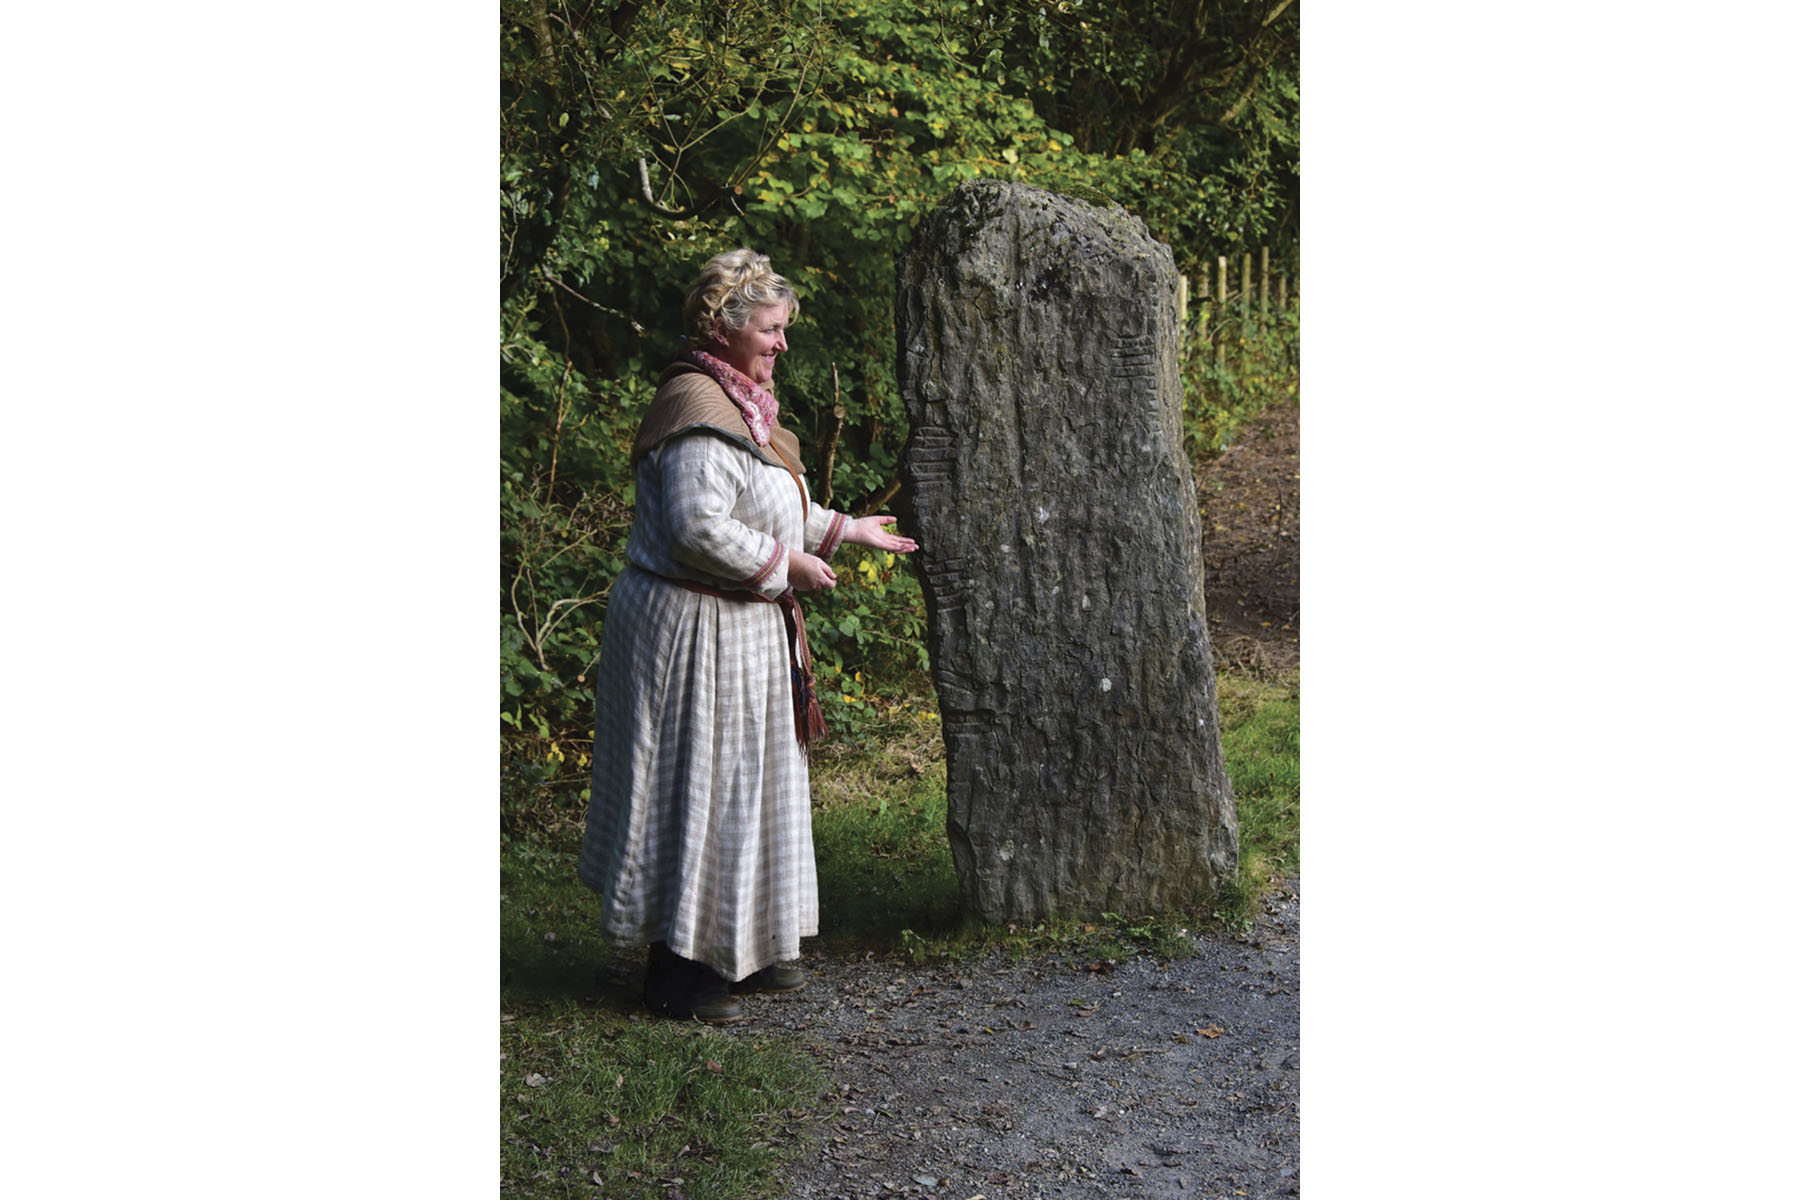 Ogham stones being explained at the national heritage park.